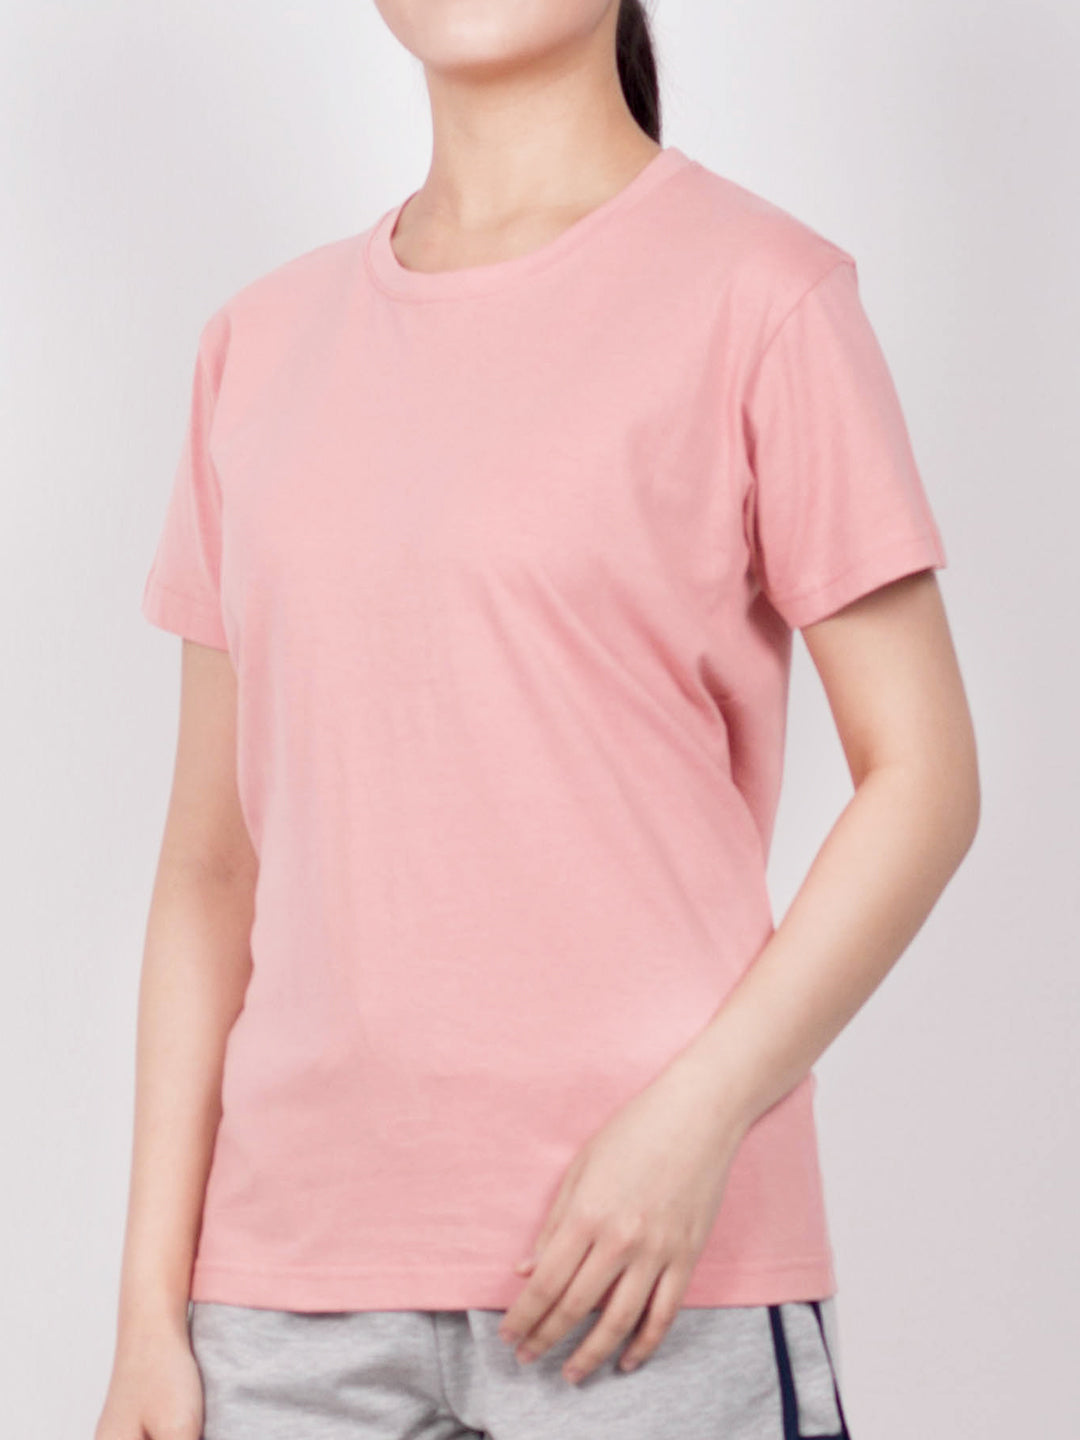 Women Short Sleeve T-Shirt - Light Pink - RFH20F2178